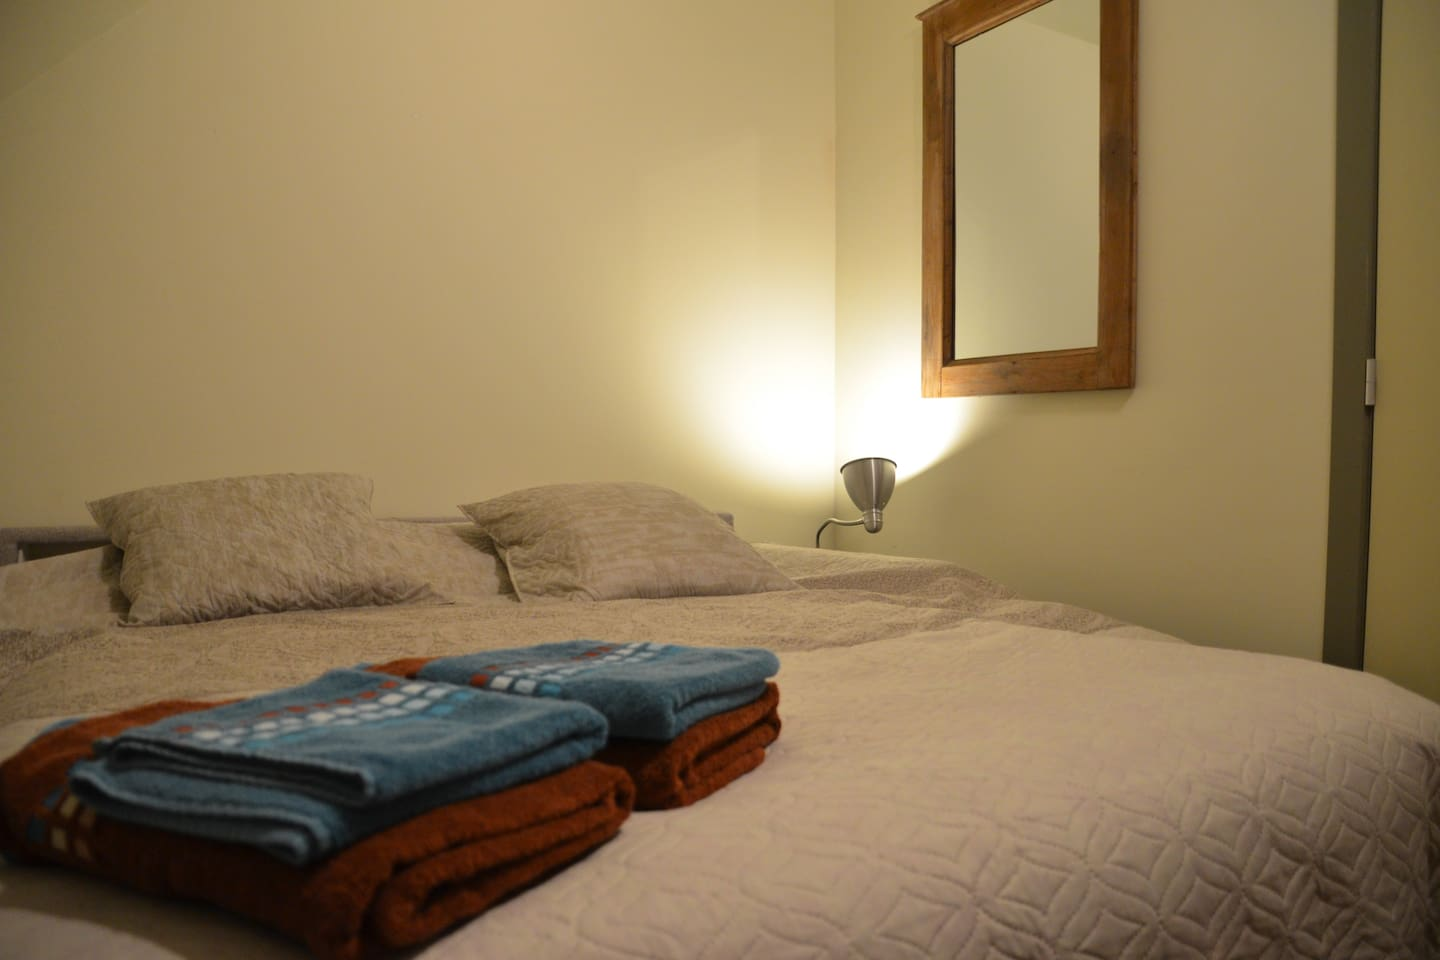 Room 1: double bed